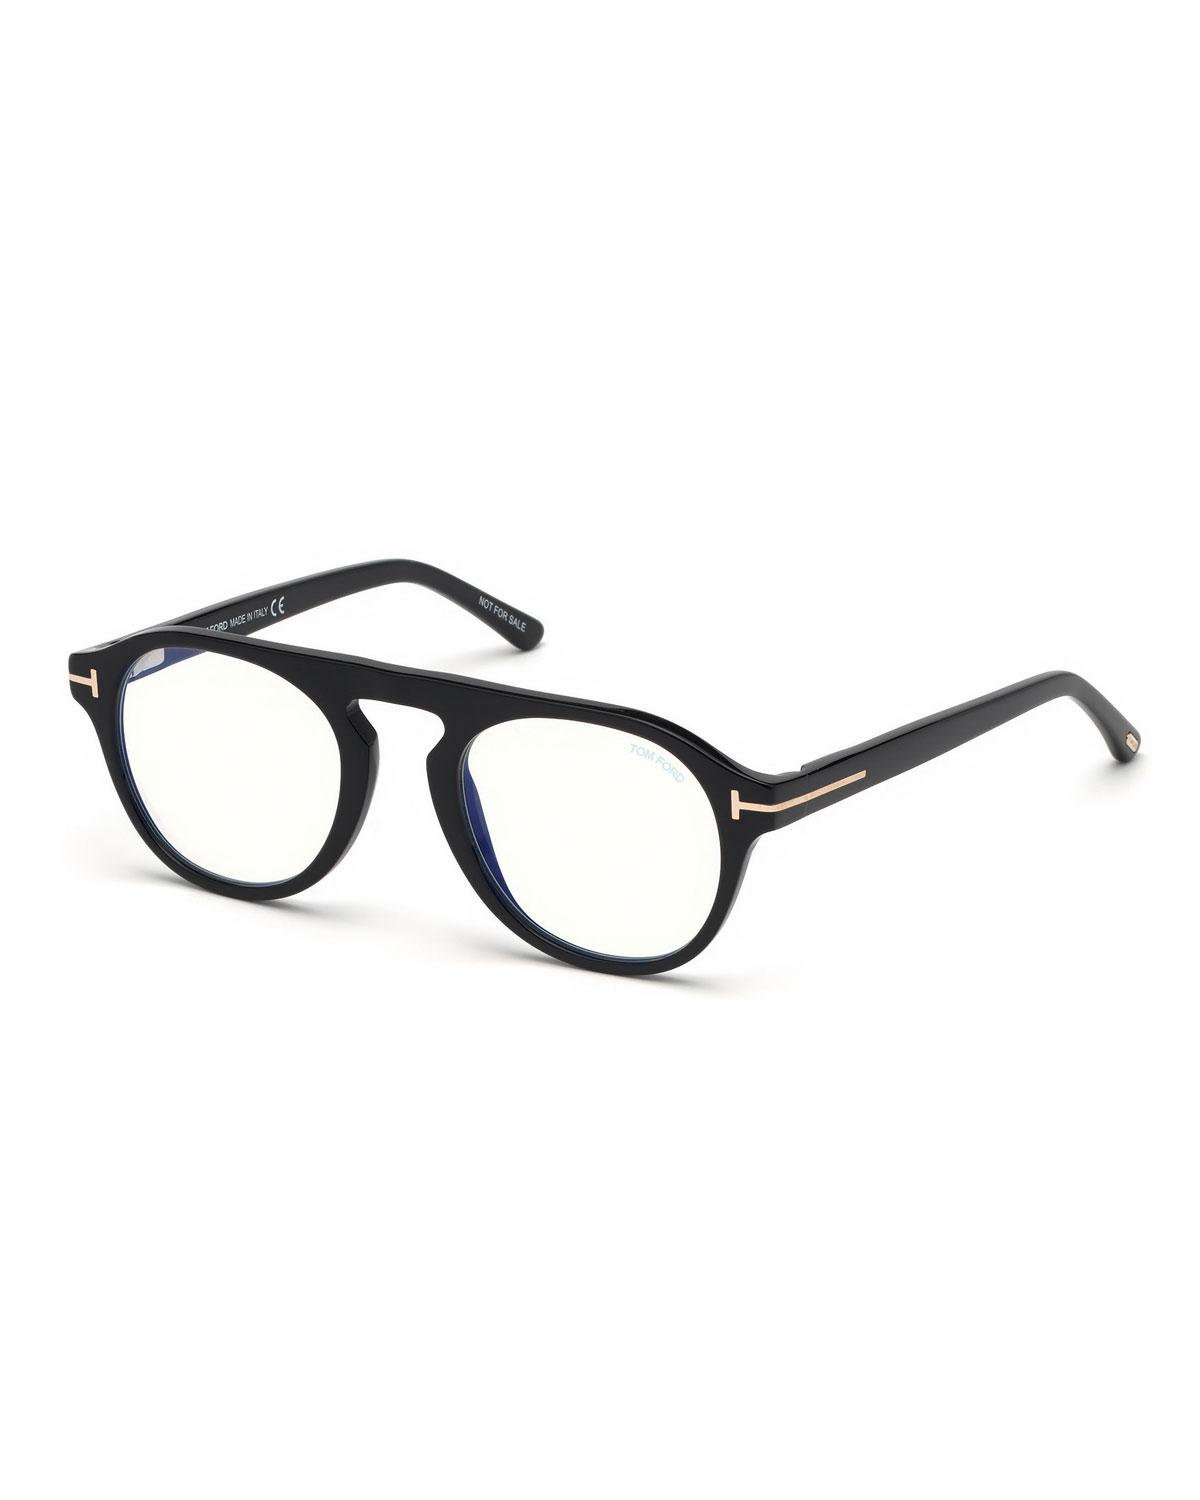 c214d74752 Tom Ford Men s Round Optical Glasses W  Magnetic Clip On Blue-block Shade  in Black for Men - Lyst